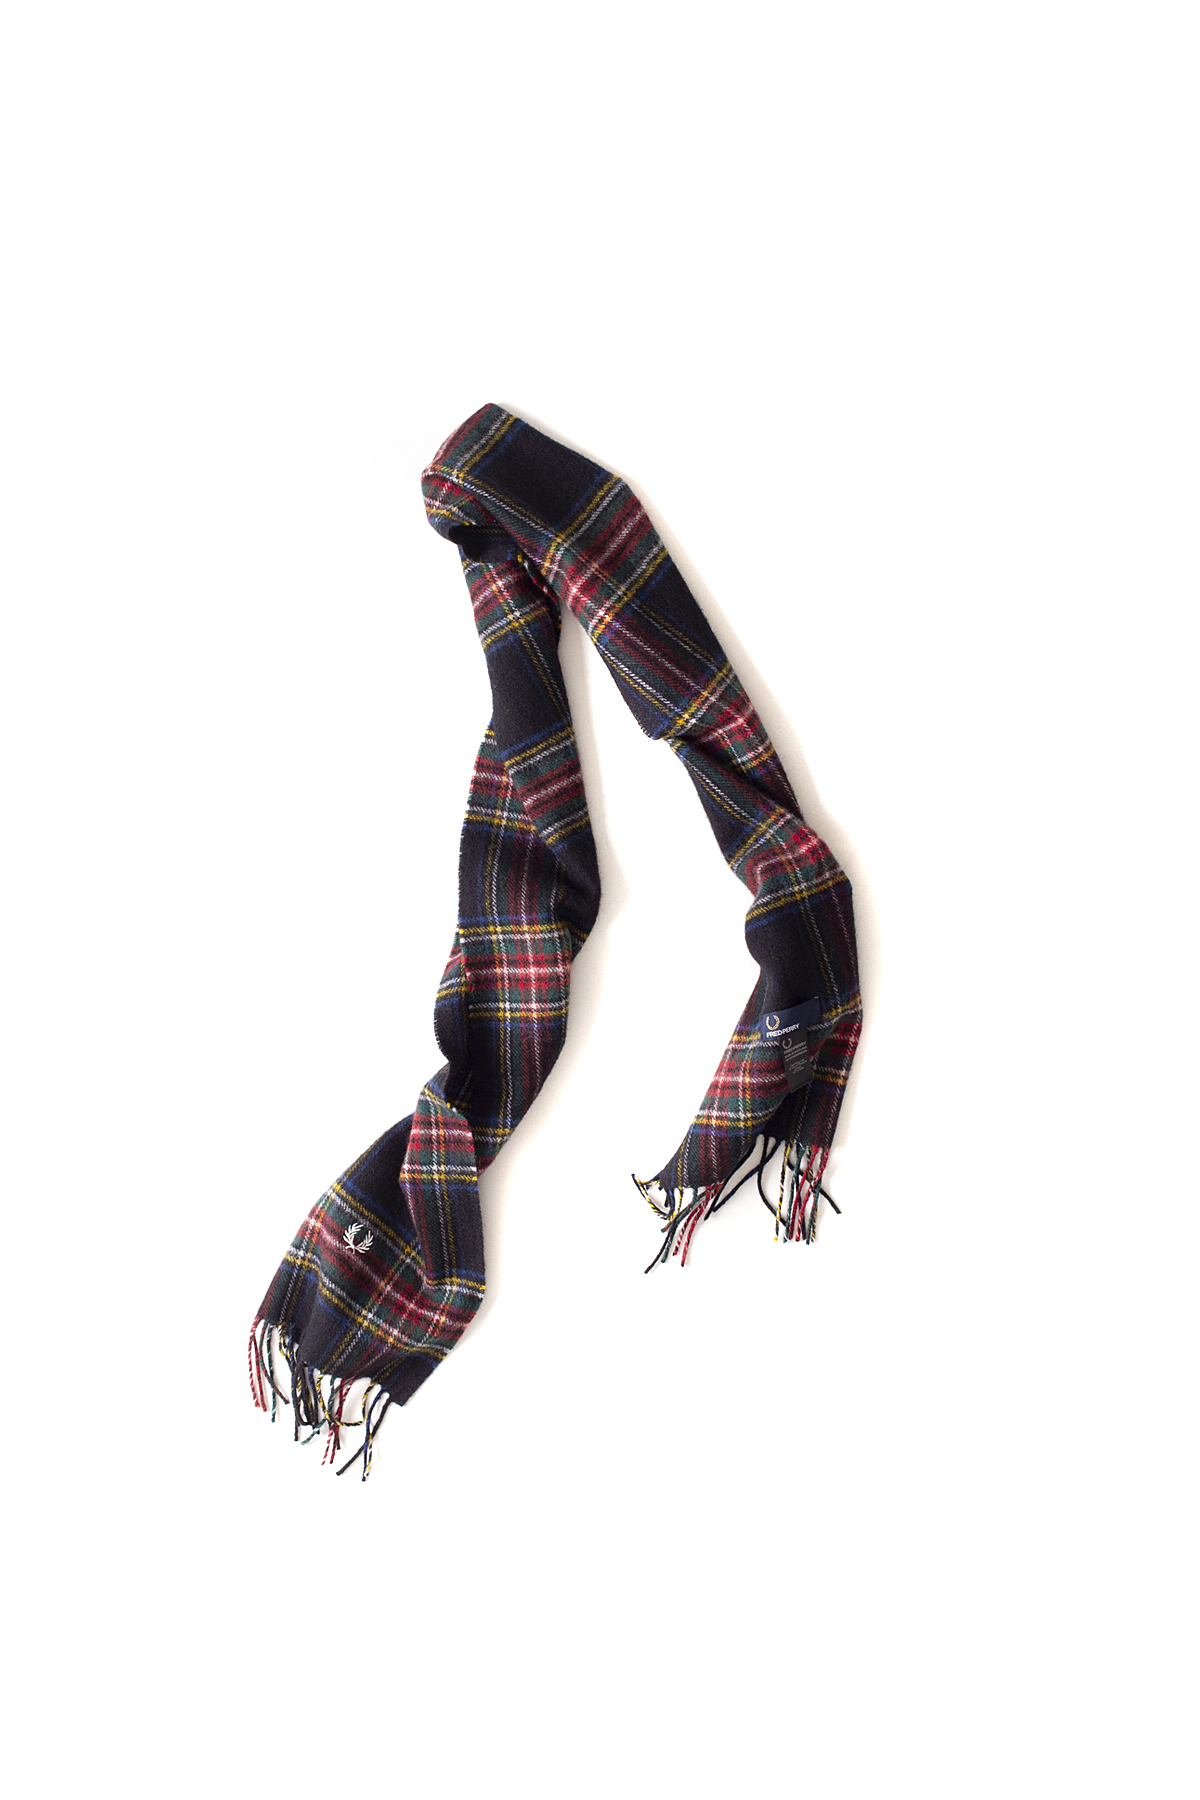 FRED PERRY : Black Stewart Tartan Scarf (Black)